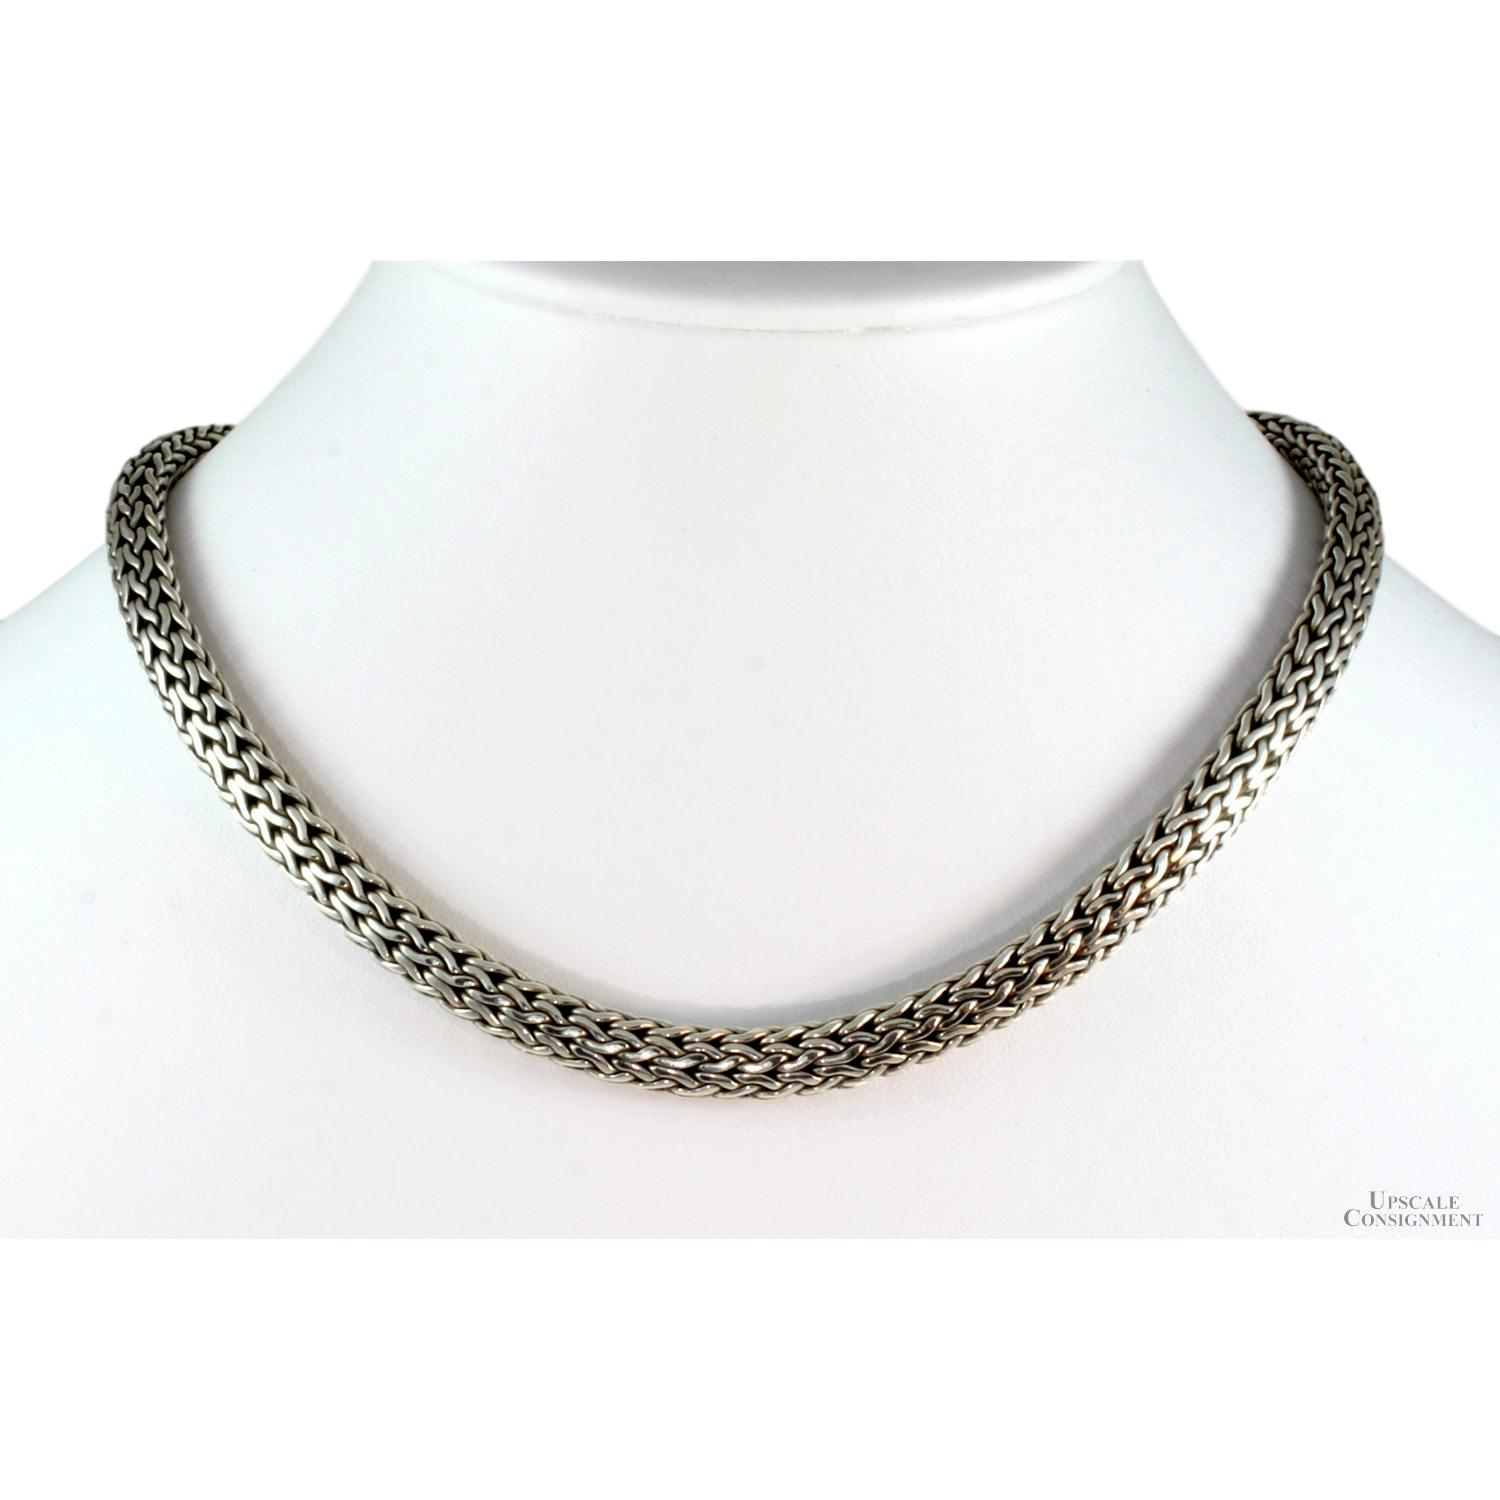 John-Hardy-Woven-Wheat-Sterling-Silver-16-Chain-Necklace_88011A.jpg